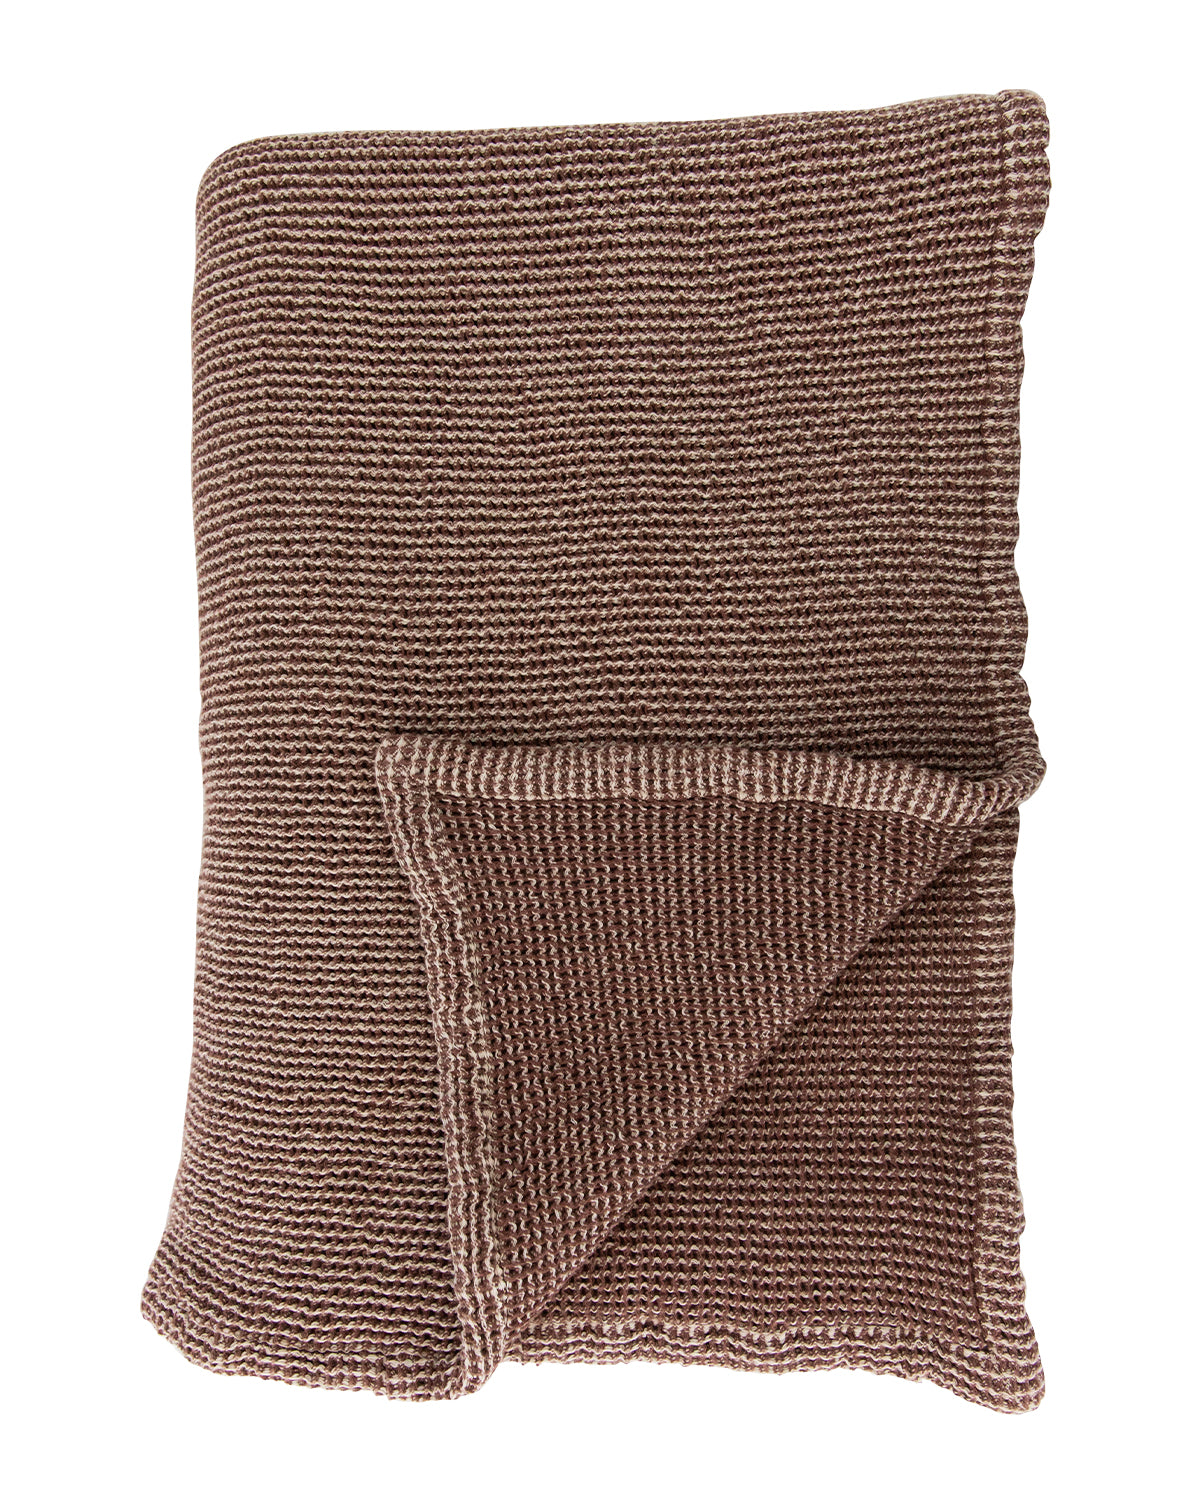 Whitby Woven Throw